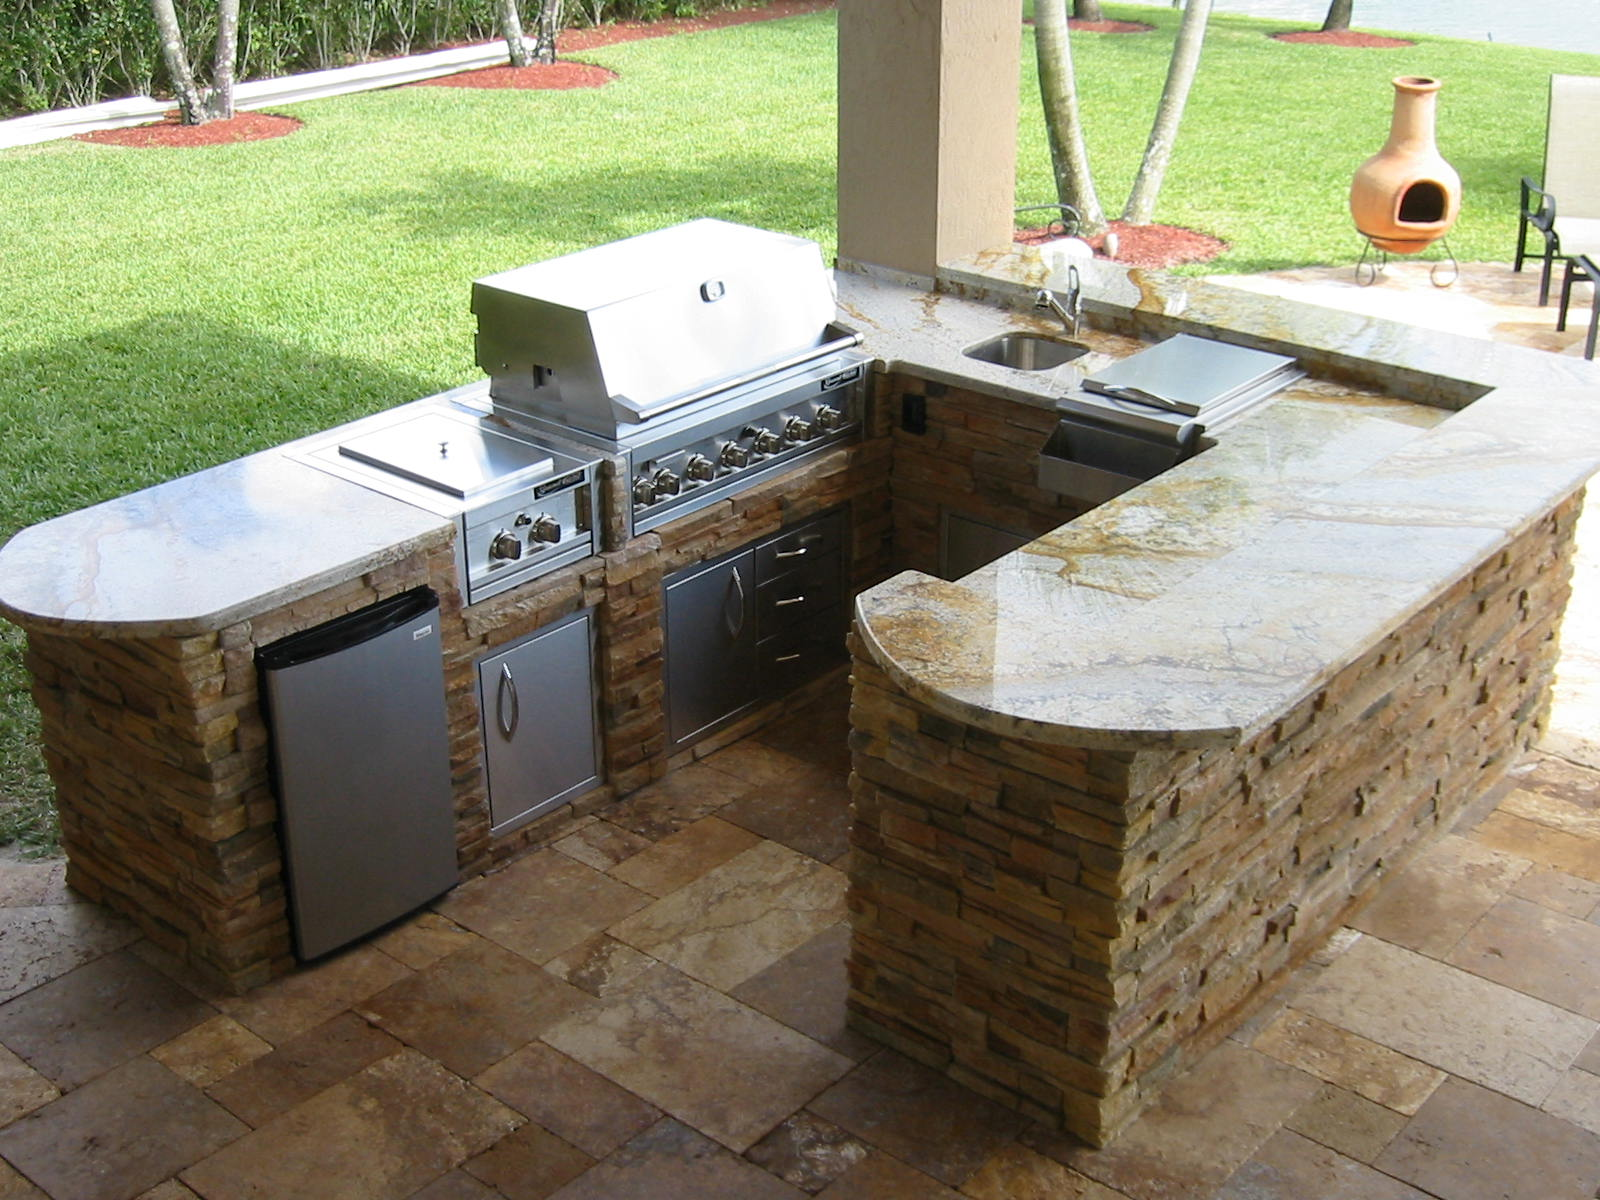 Outdoor kitchen depot outdoor kitchen building and design for Outdoor kitchen design ideas